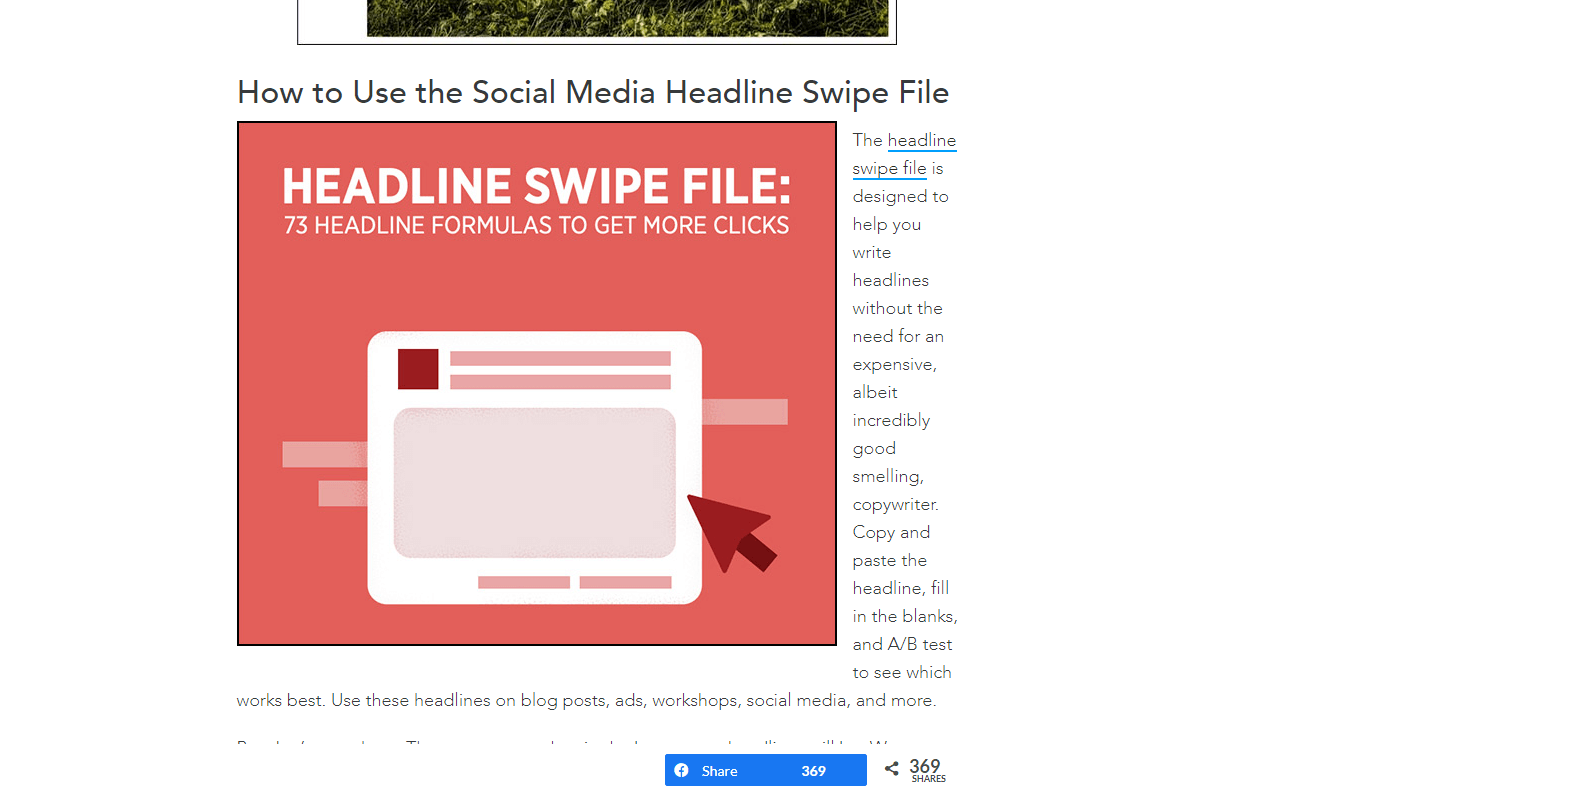 Swipe file example from Digital Marketer